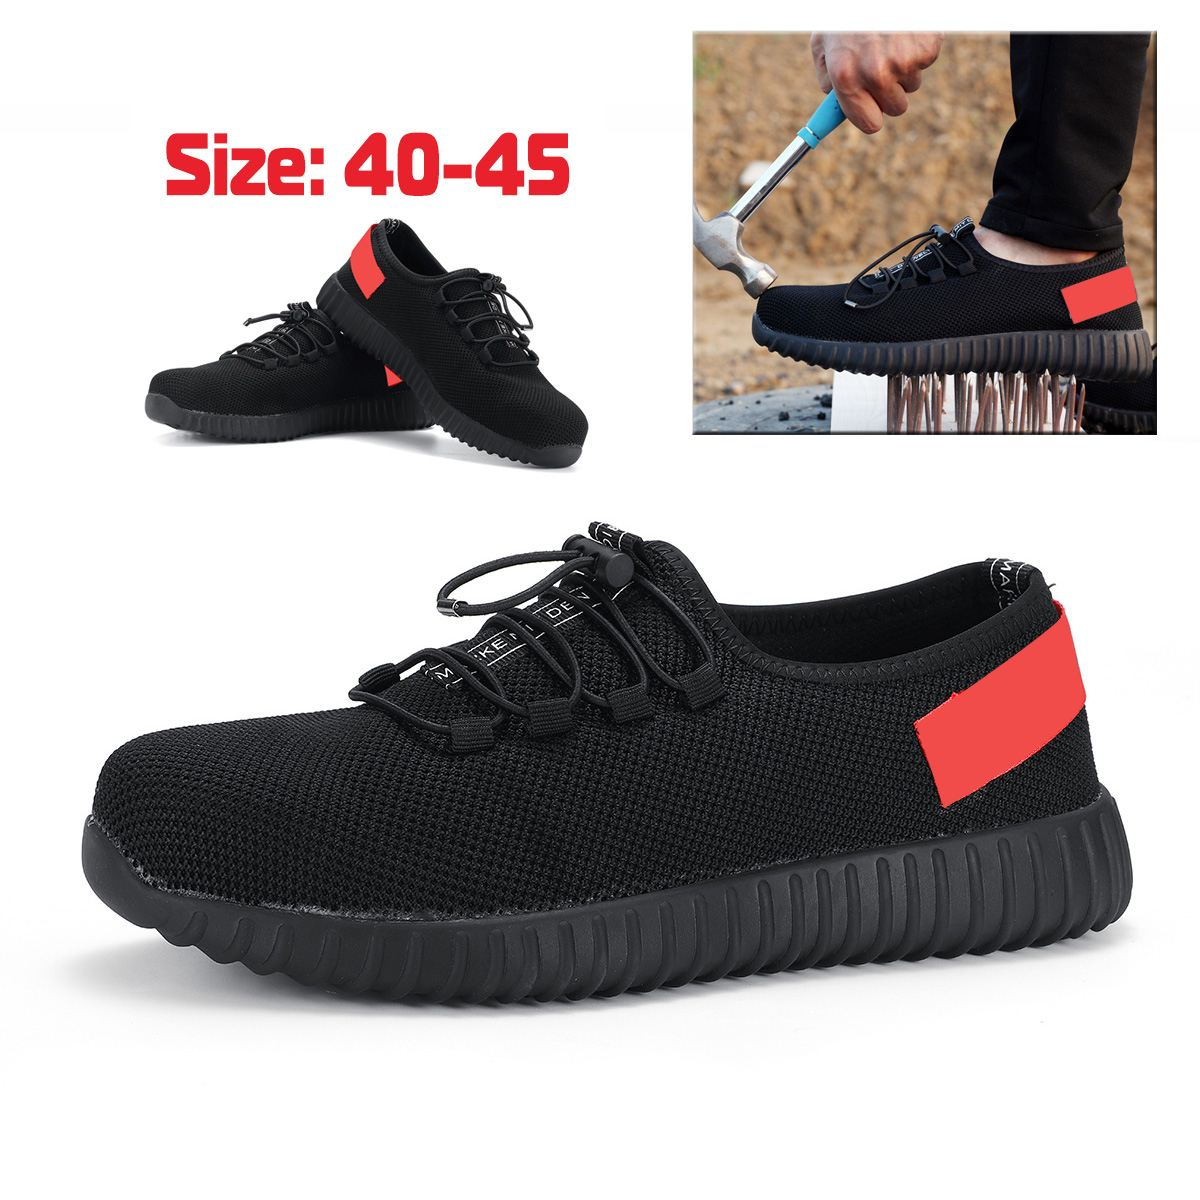 Men's Winter Steel Toe Work Safety Shoes Casual Breathable Outdoor Sneakers Proof Boots Comfortable Industrial Safety Boots